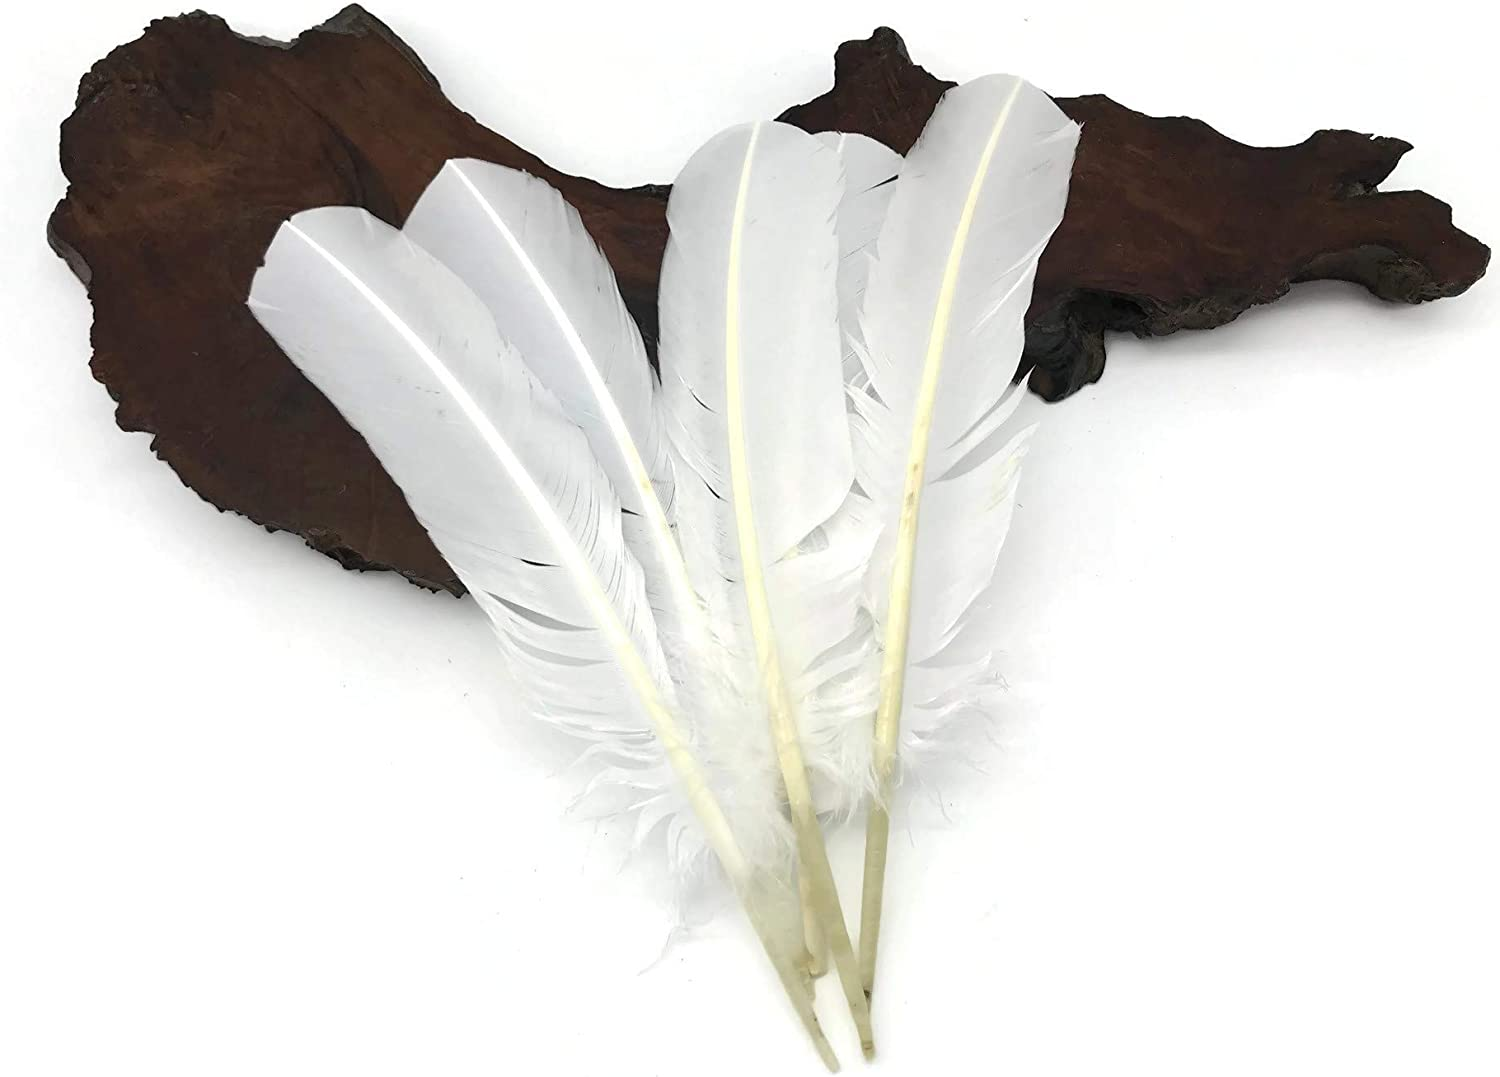 Moonlight Feather 50 Pieces - Turkey White R Max 41% OFF Nashville-Davidson Mall Feathers